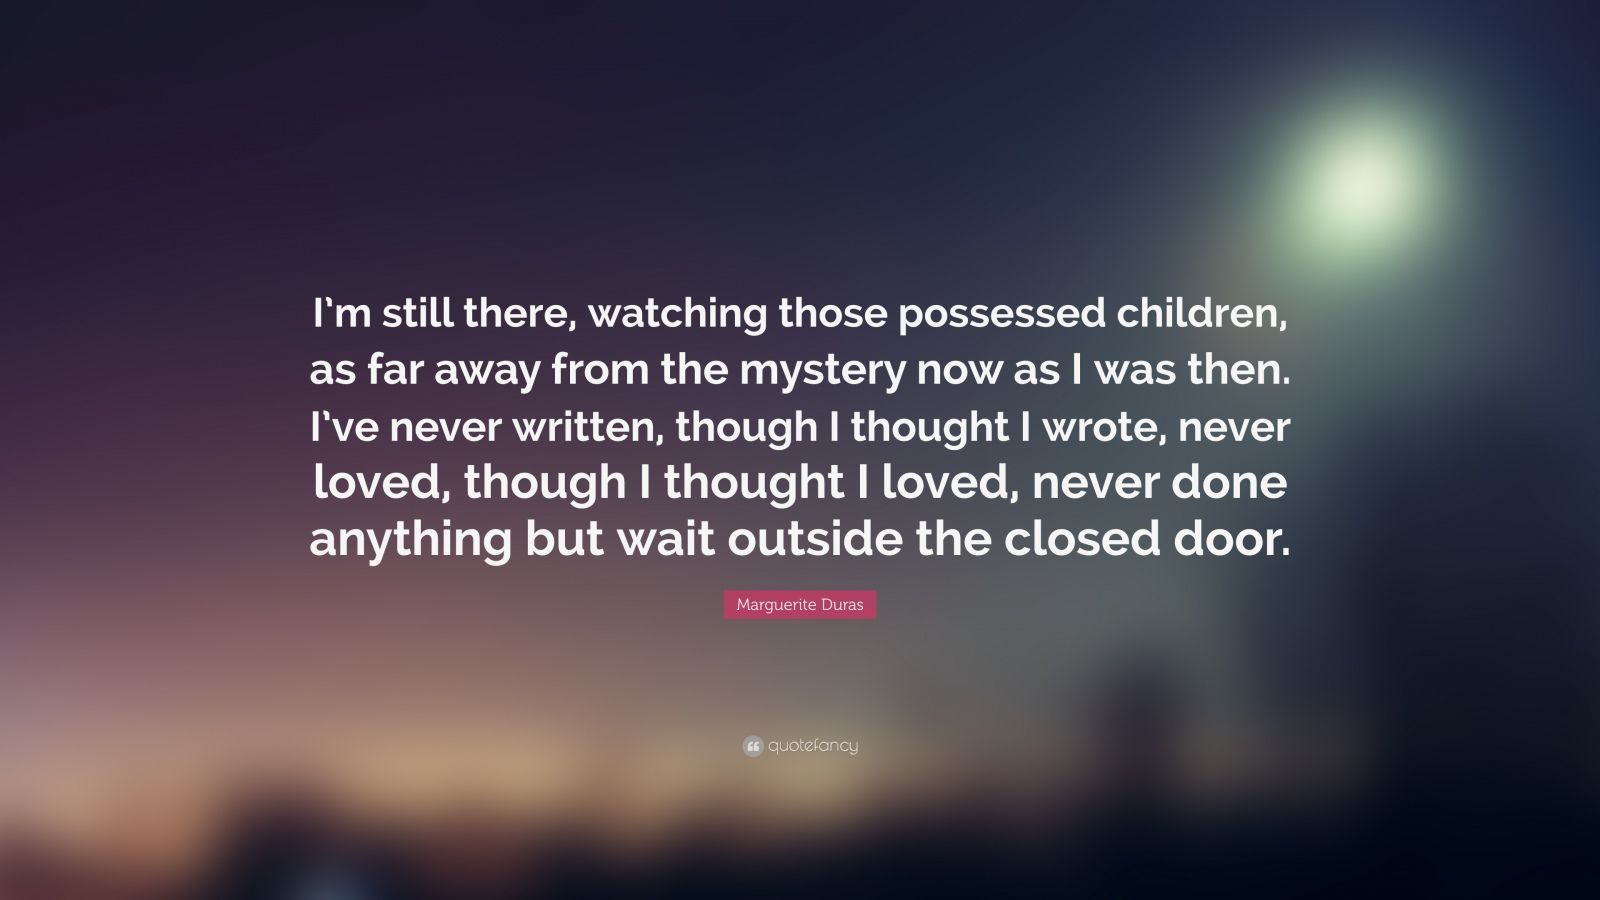 "Marguerite Duras Quote: ""I'm still there, watching those possessed children, as far away from the mystery now as I was then. I've never written, though I thought I wrote, never loved, though I thought I loved, never done anything but wait outside the closed door."""